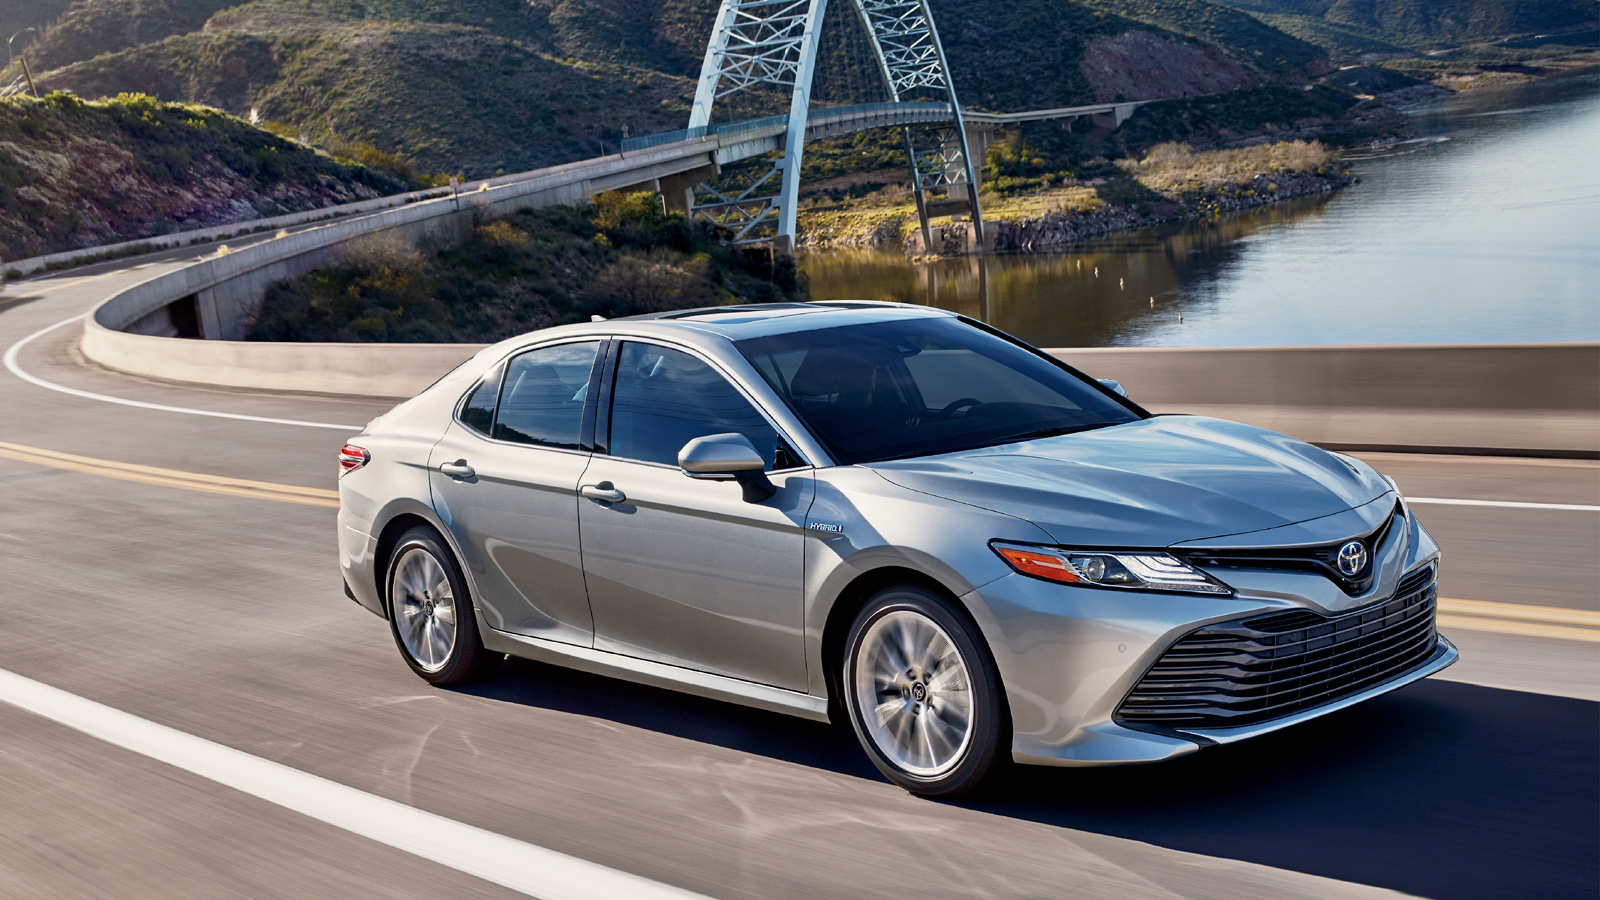 2018 Toyota Camry Xle Hybrid Overview